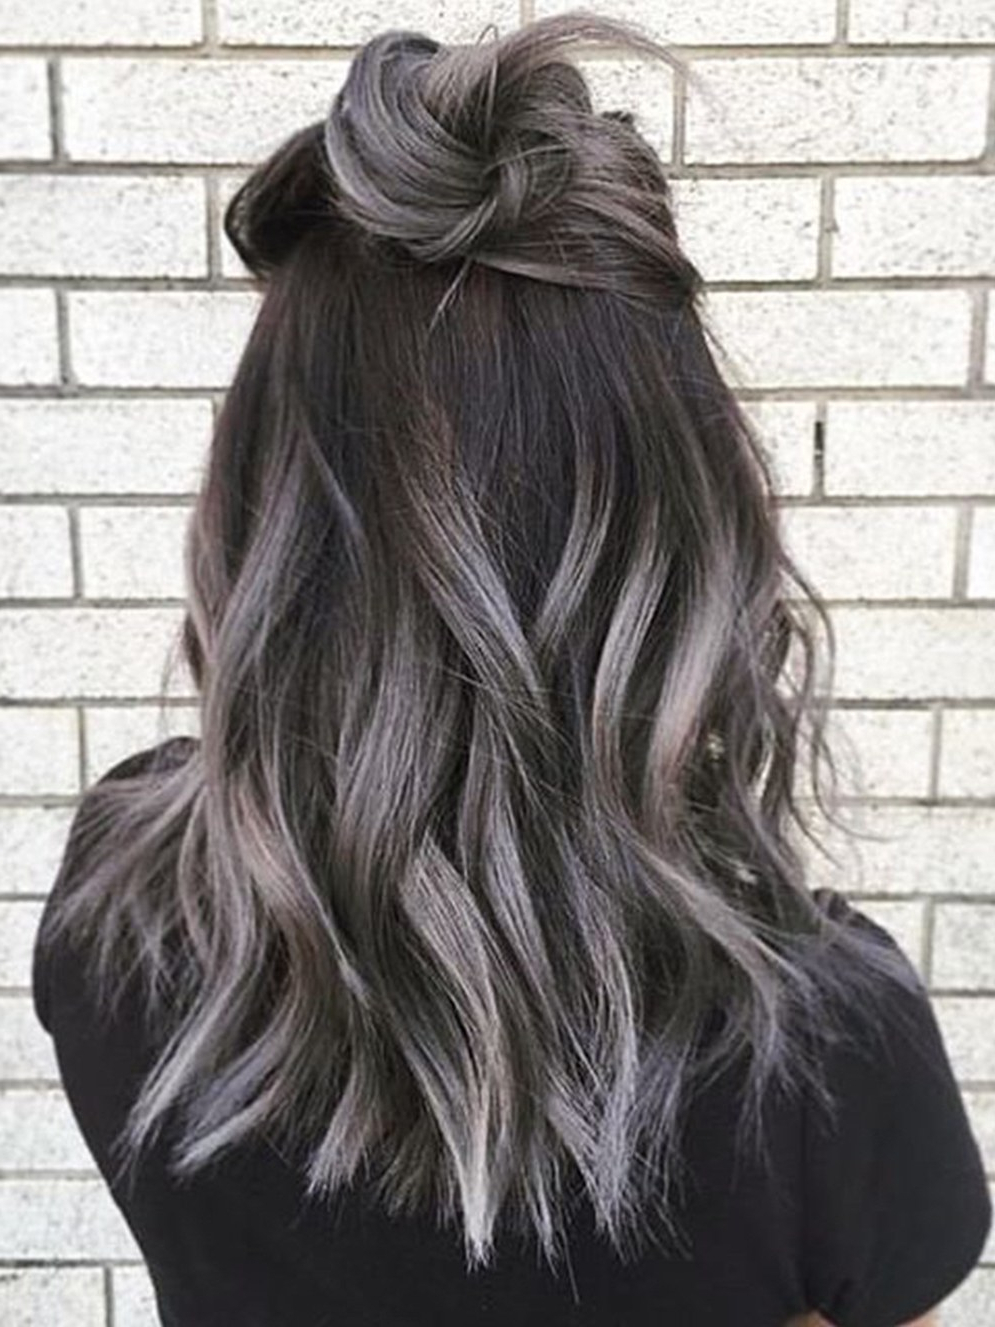 2018 Medium Hairstyles For Black Women With Gray Hair With Regard To The Gray Hair Trend: 32 Instagram Worthy Gray Ombré Hairstyles – Allure (Gallery 16 of 20)